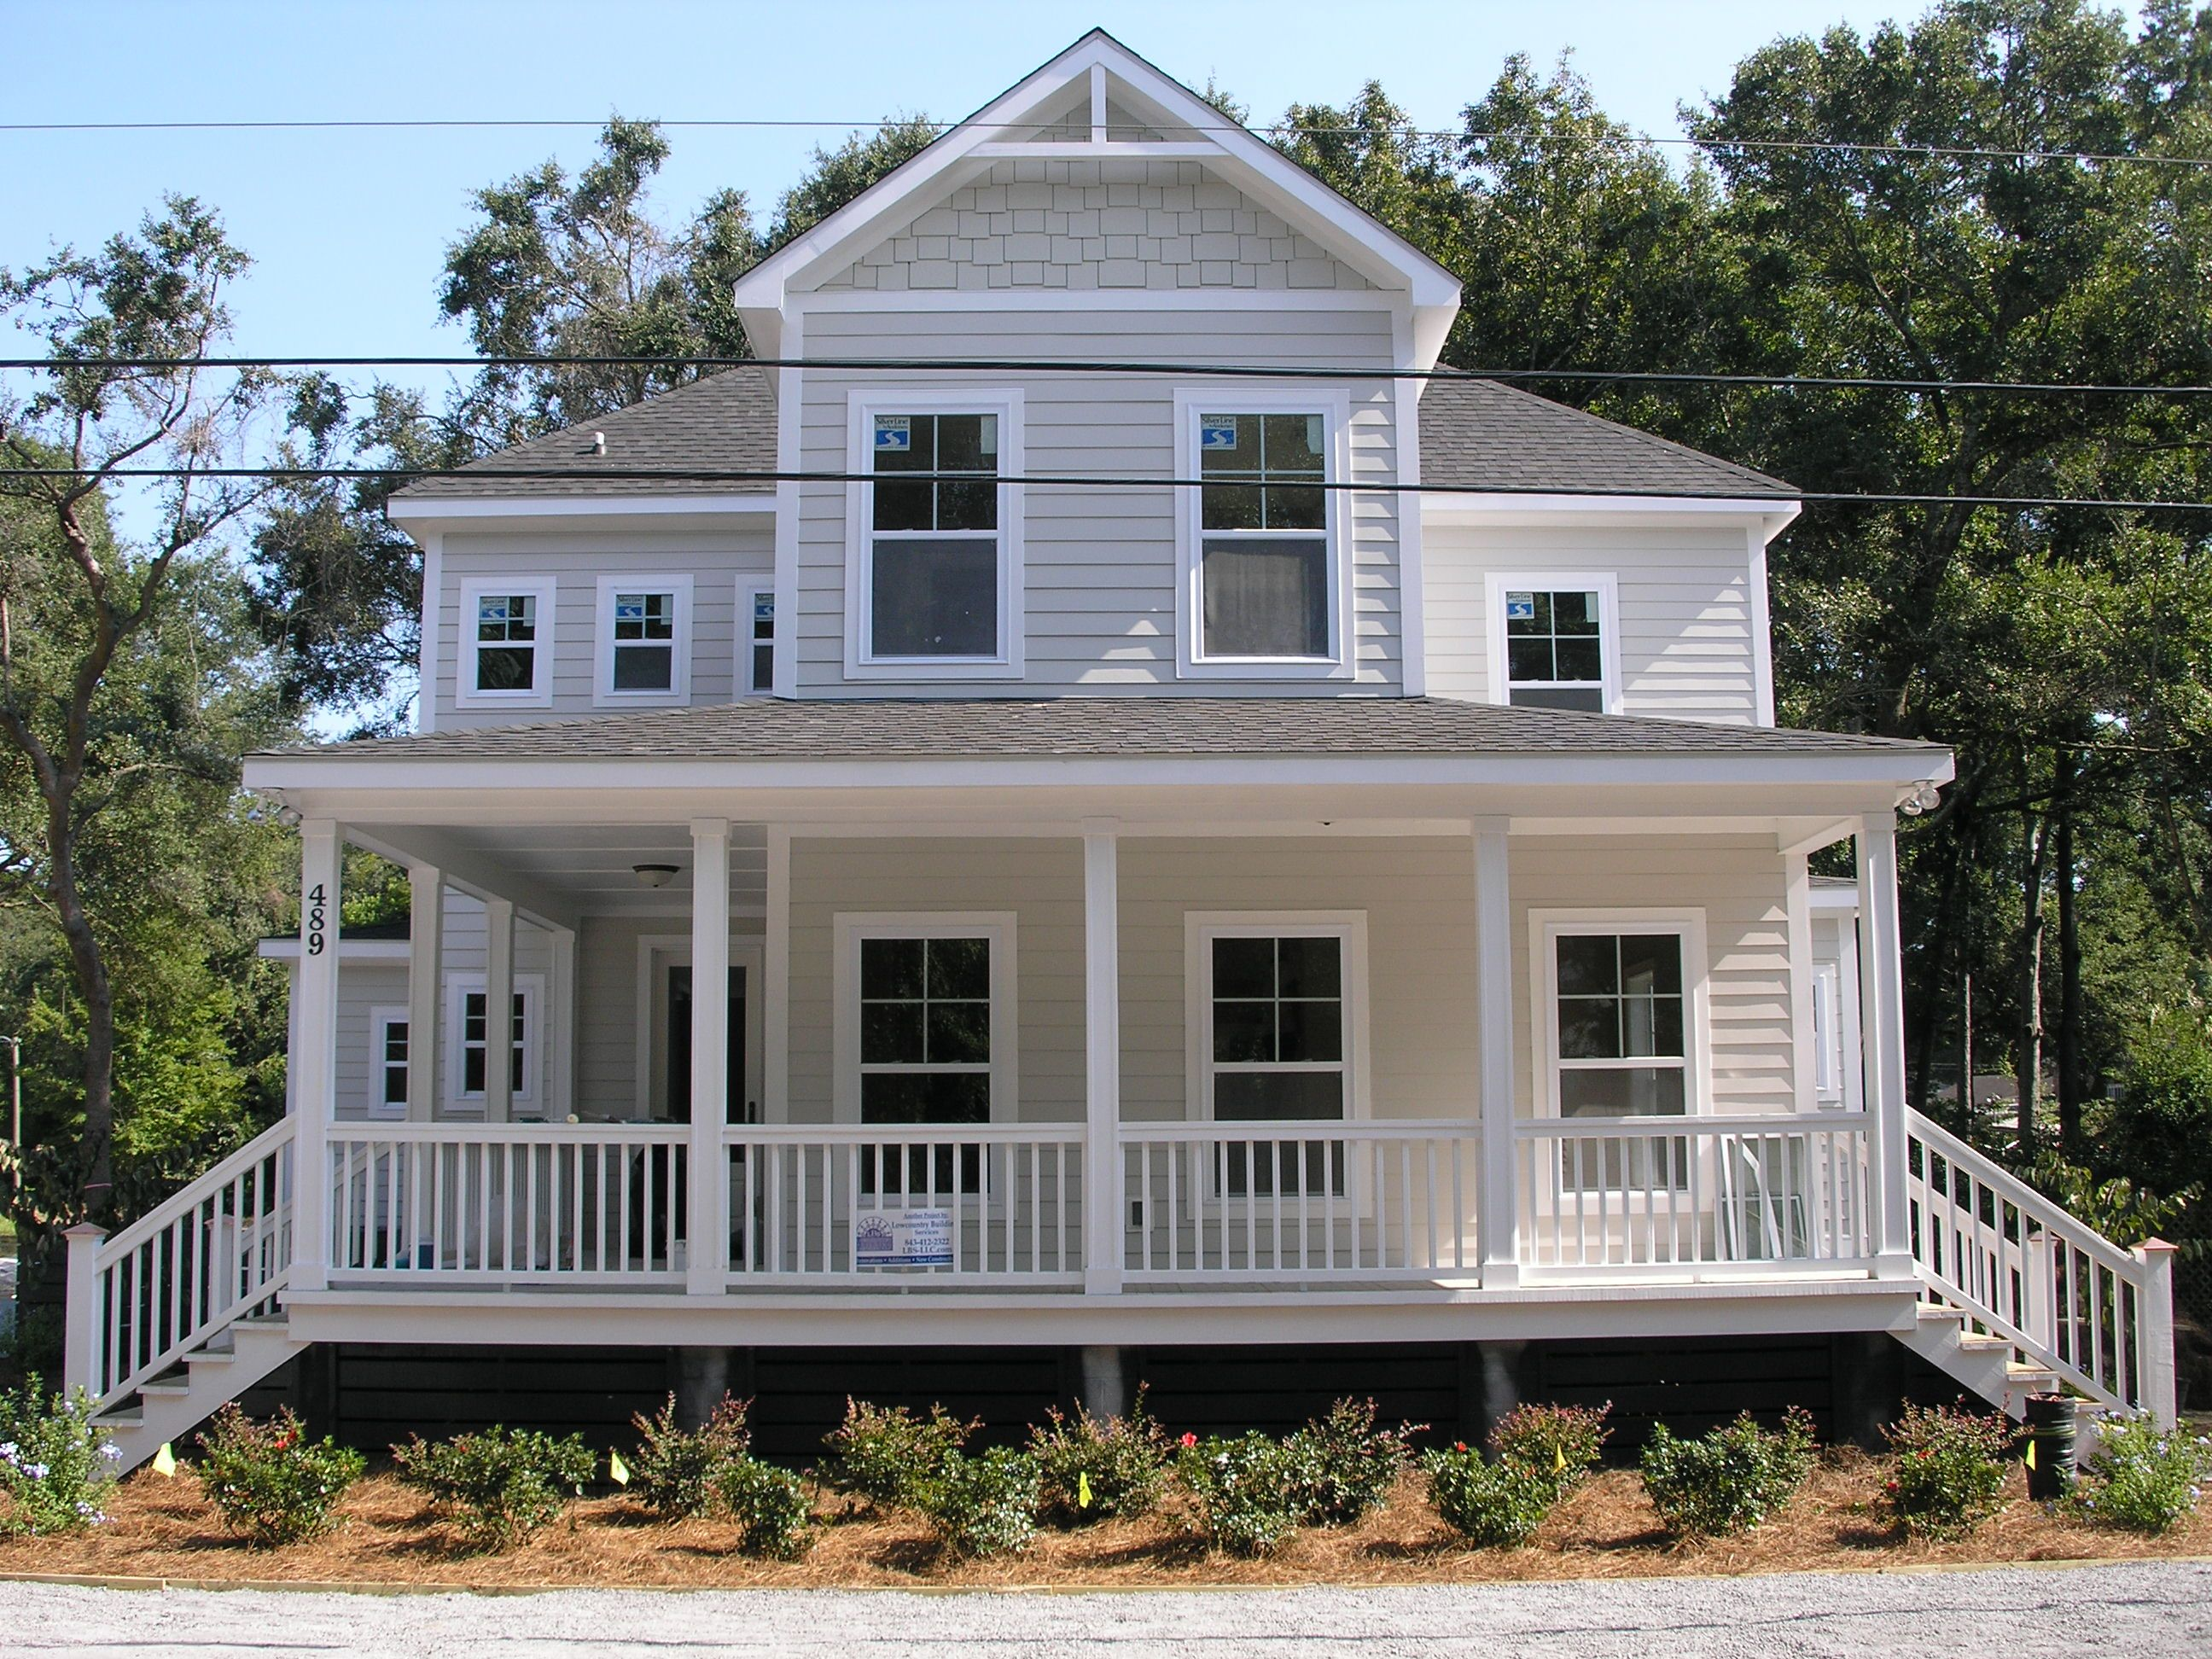 Madison Modular Home by Affinity Building Systems in